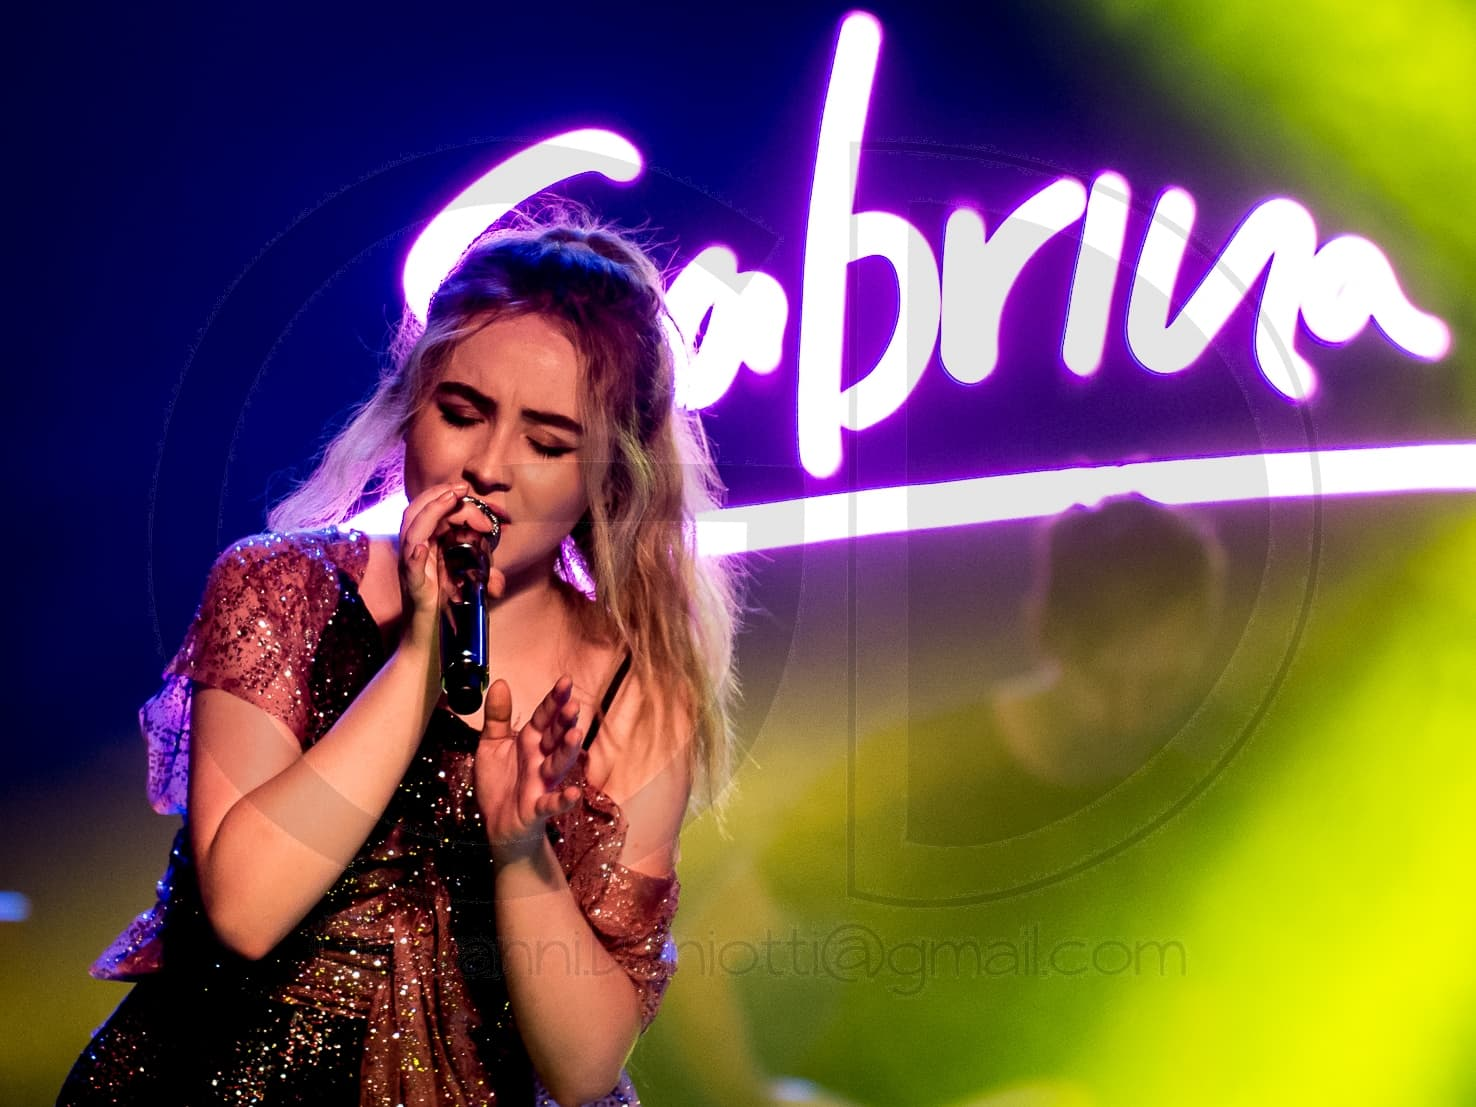 Hd Wallpaper Cars Iphone 30 Sabrina Carpenter Wallpapers Hd